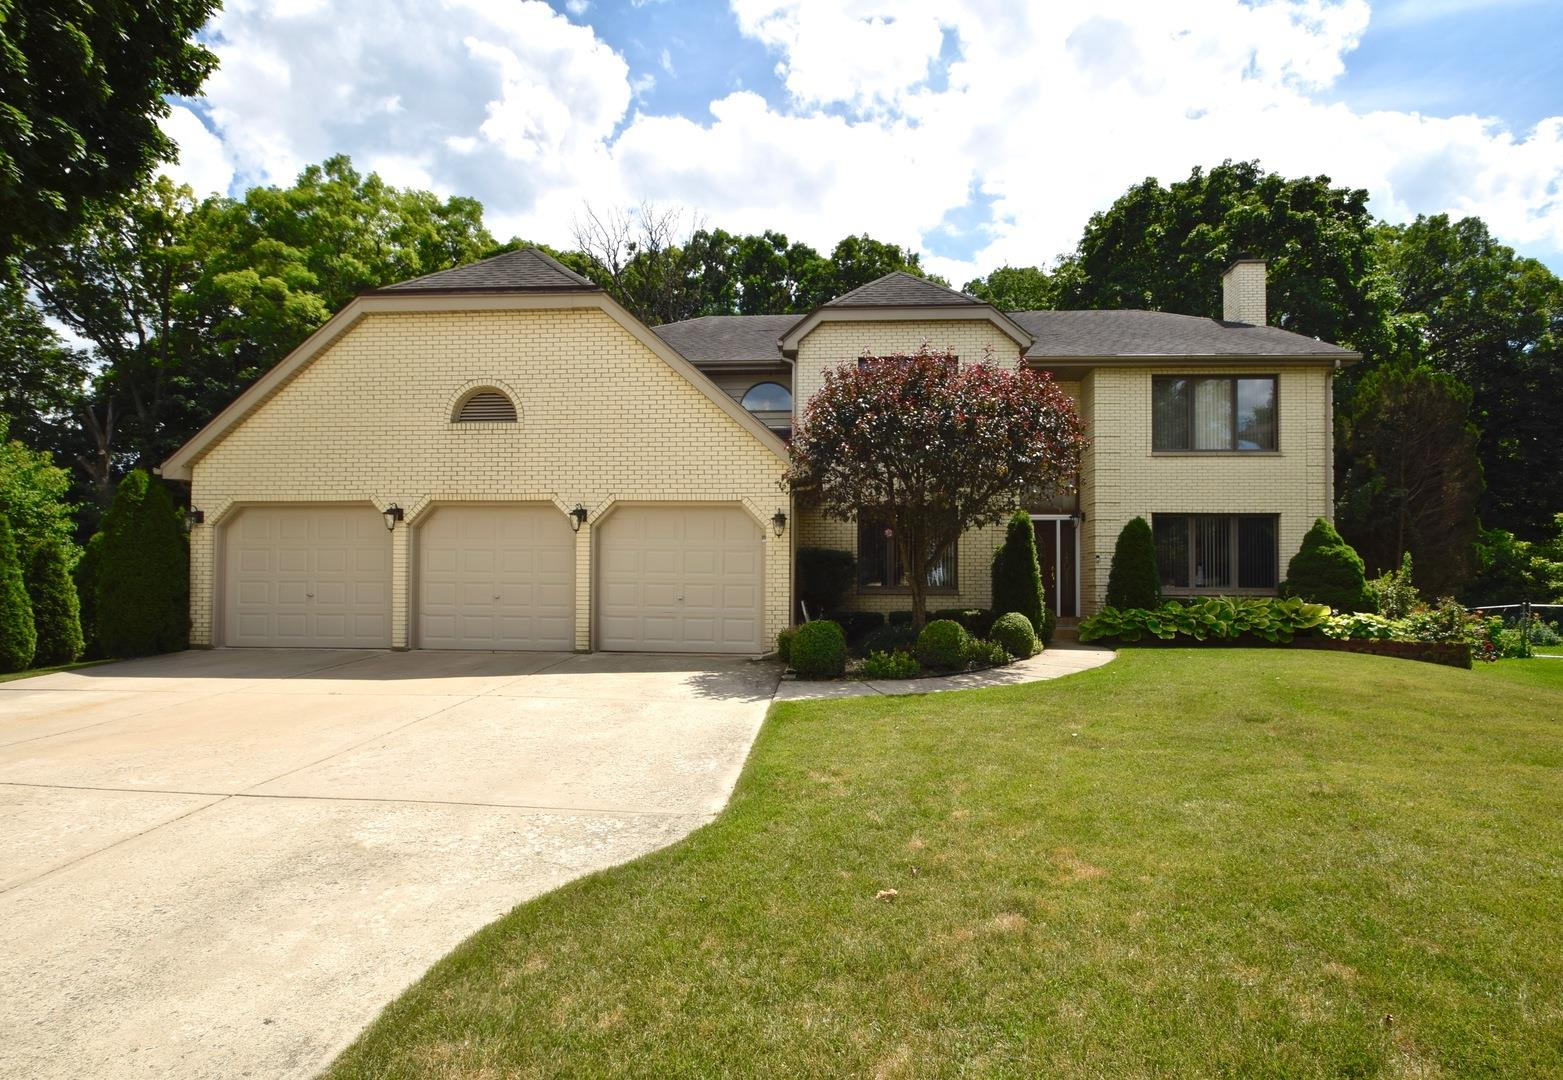 712 Catino Court, Roselle, IL 60172 - #: 10784839